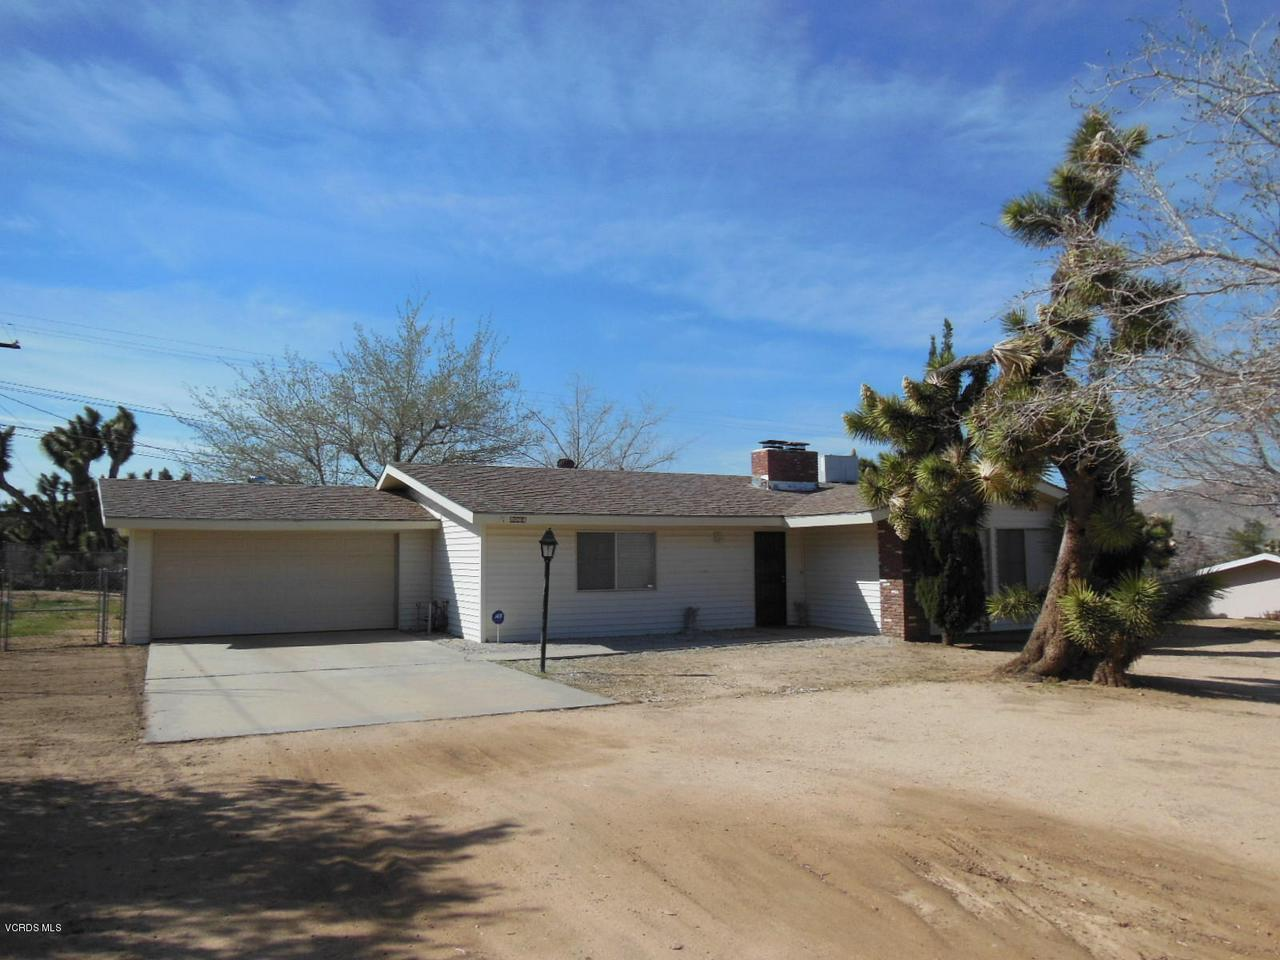 8064 GRAND, Yucca Valley, CA 92284 - DSCN0801